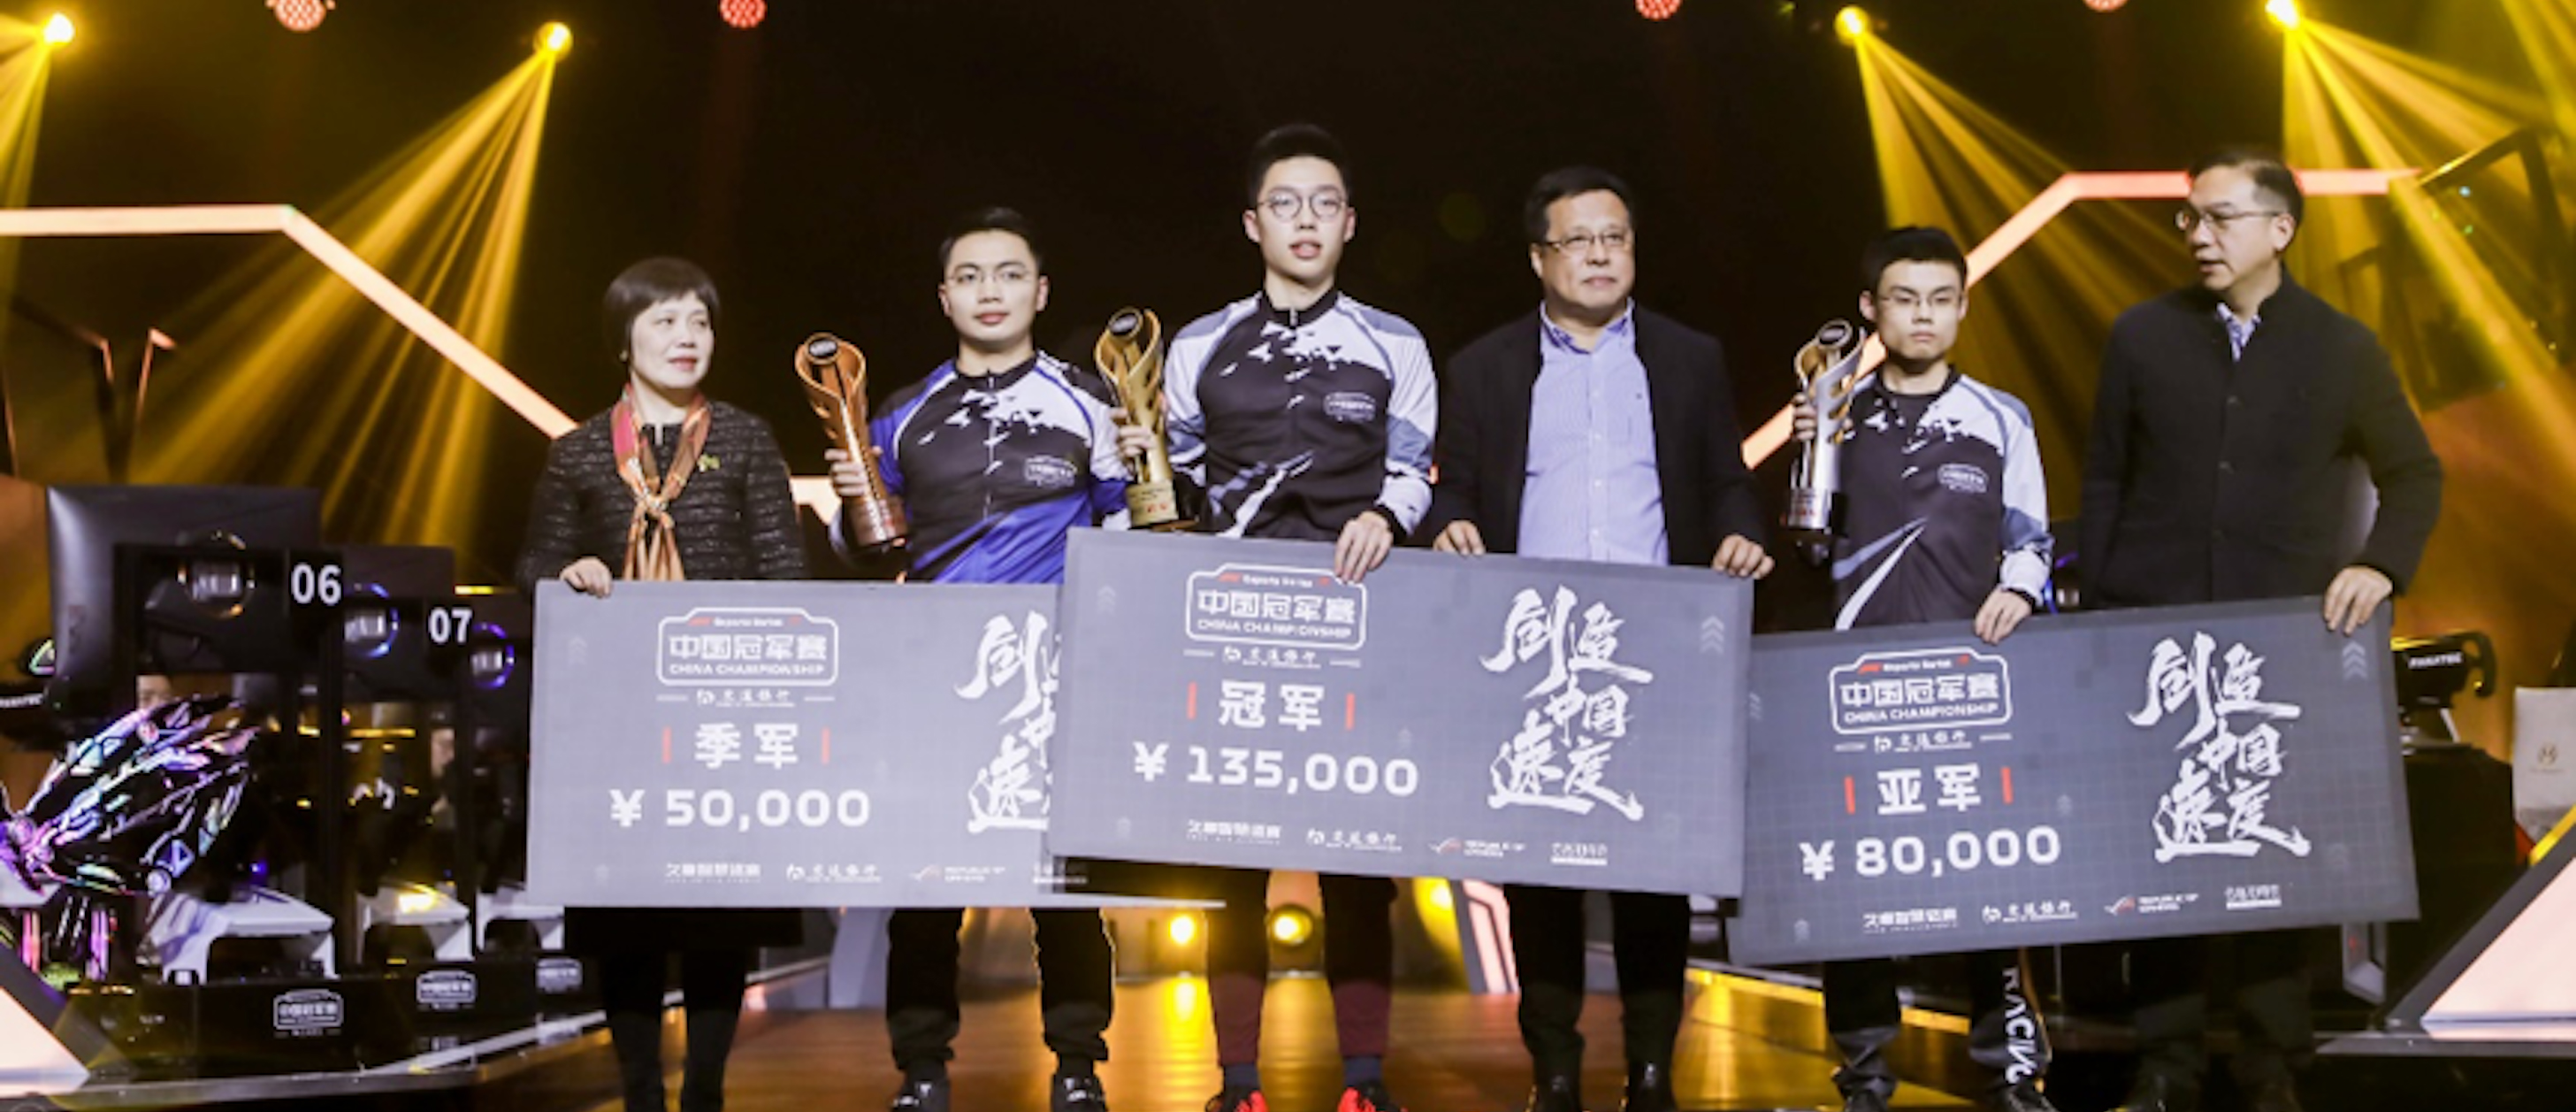 Inaugural F1 Esports China Championship Winner Crowned in Shanghai